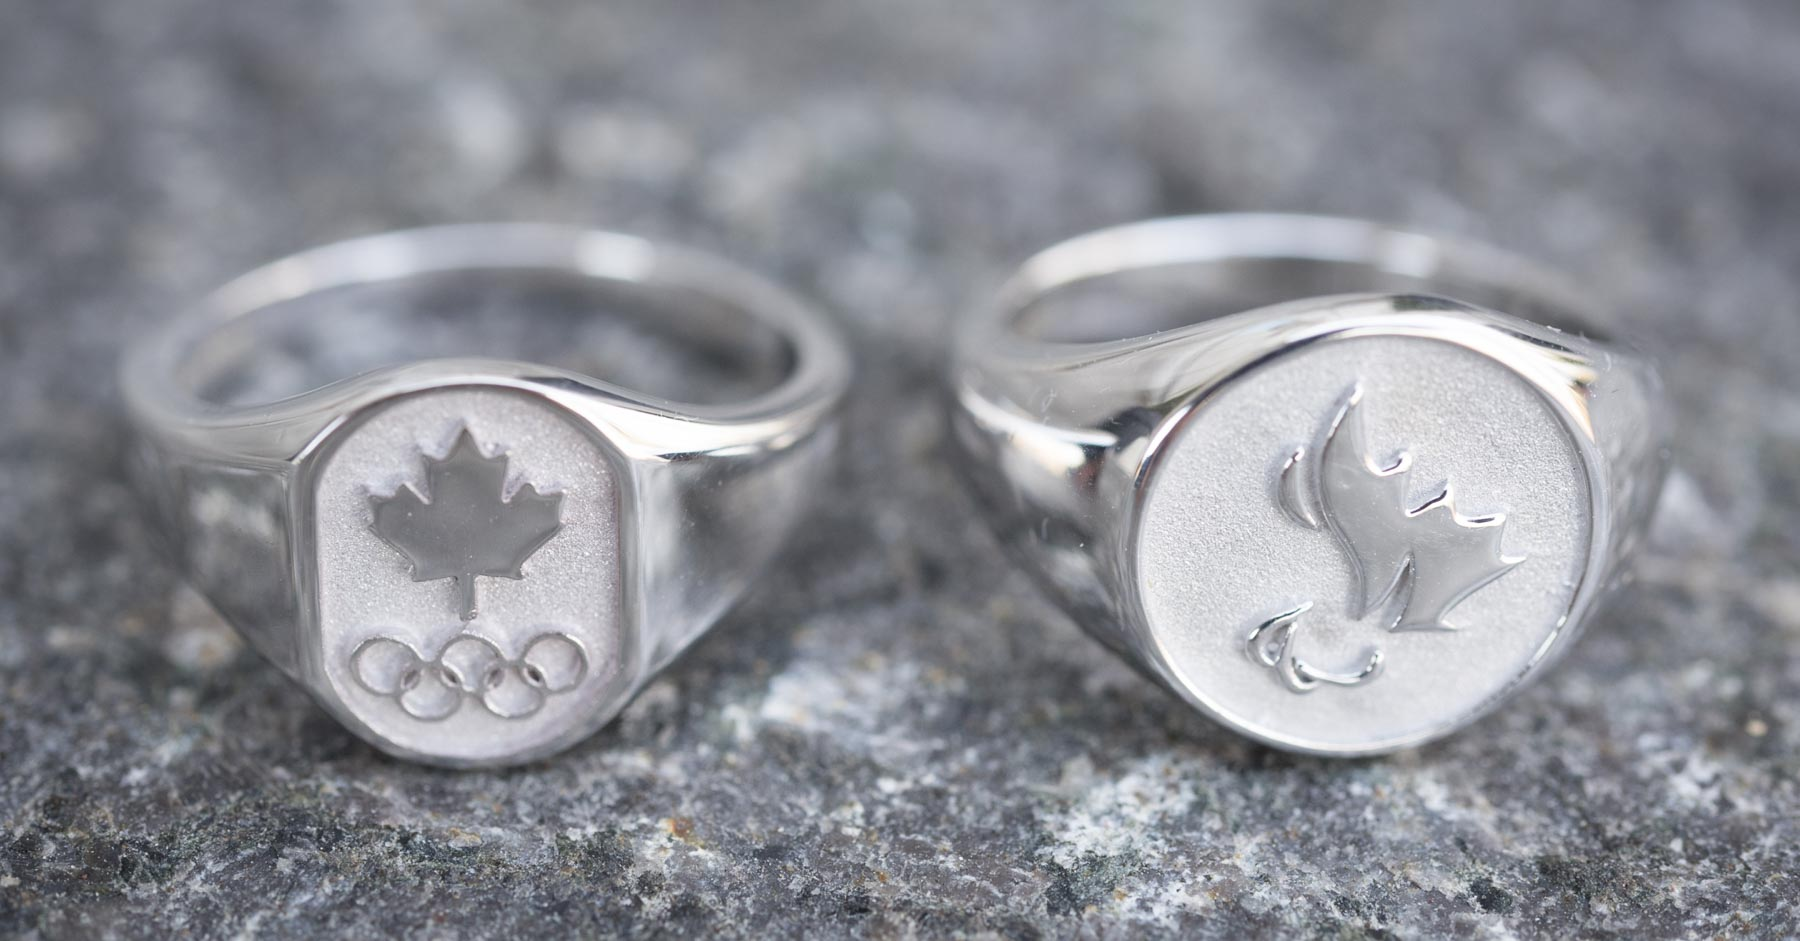 The Governor General and Tricia Smith, President of the Canadian Olympic Committee, presented the first Olympic and Paralympic rings to five athletes.